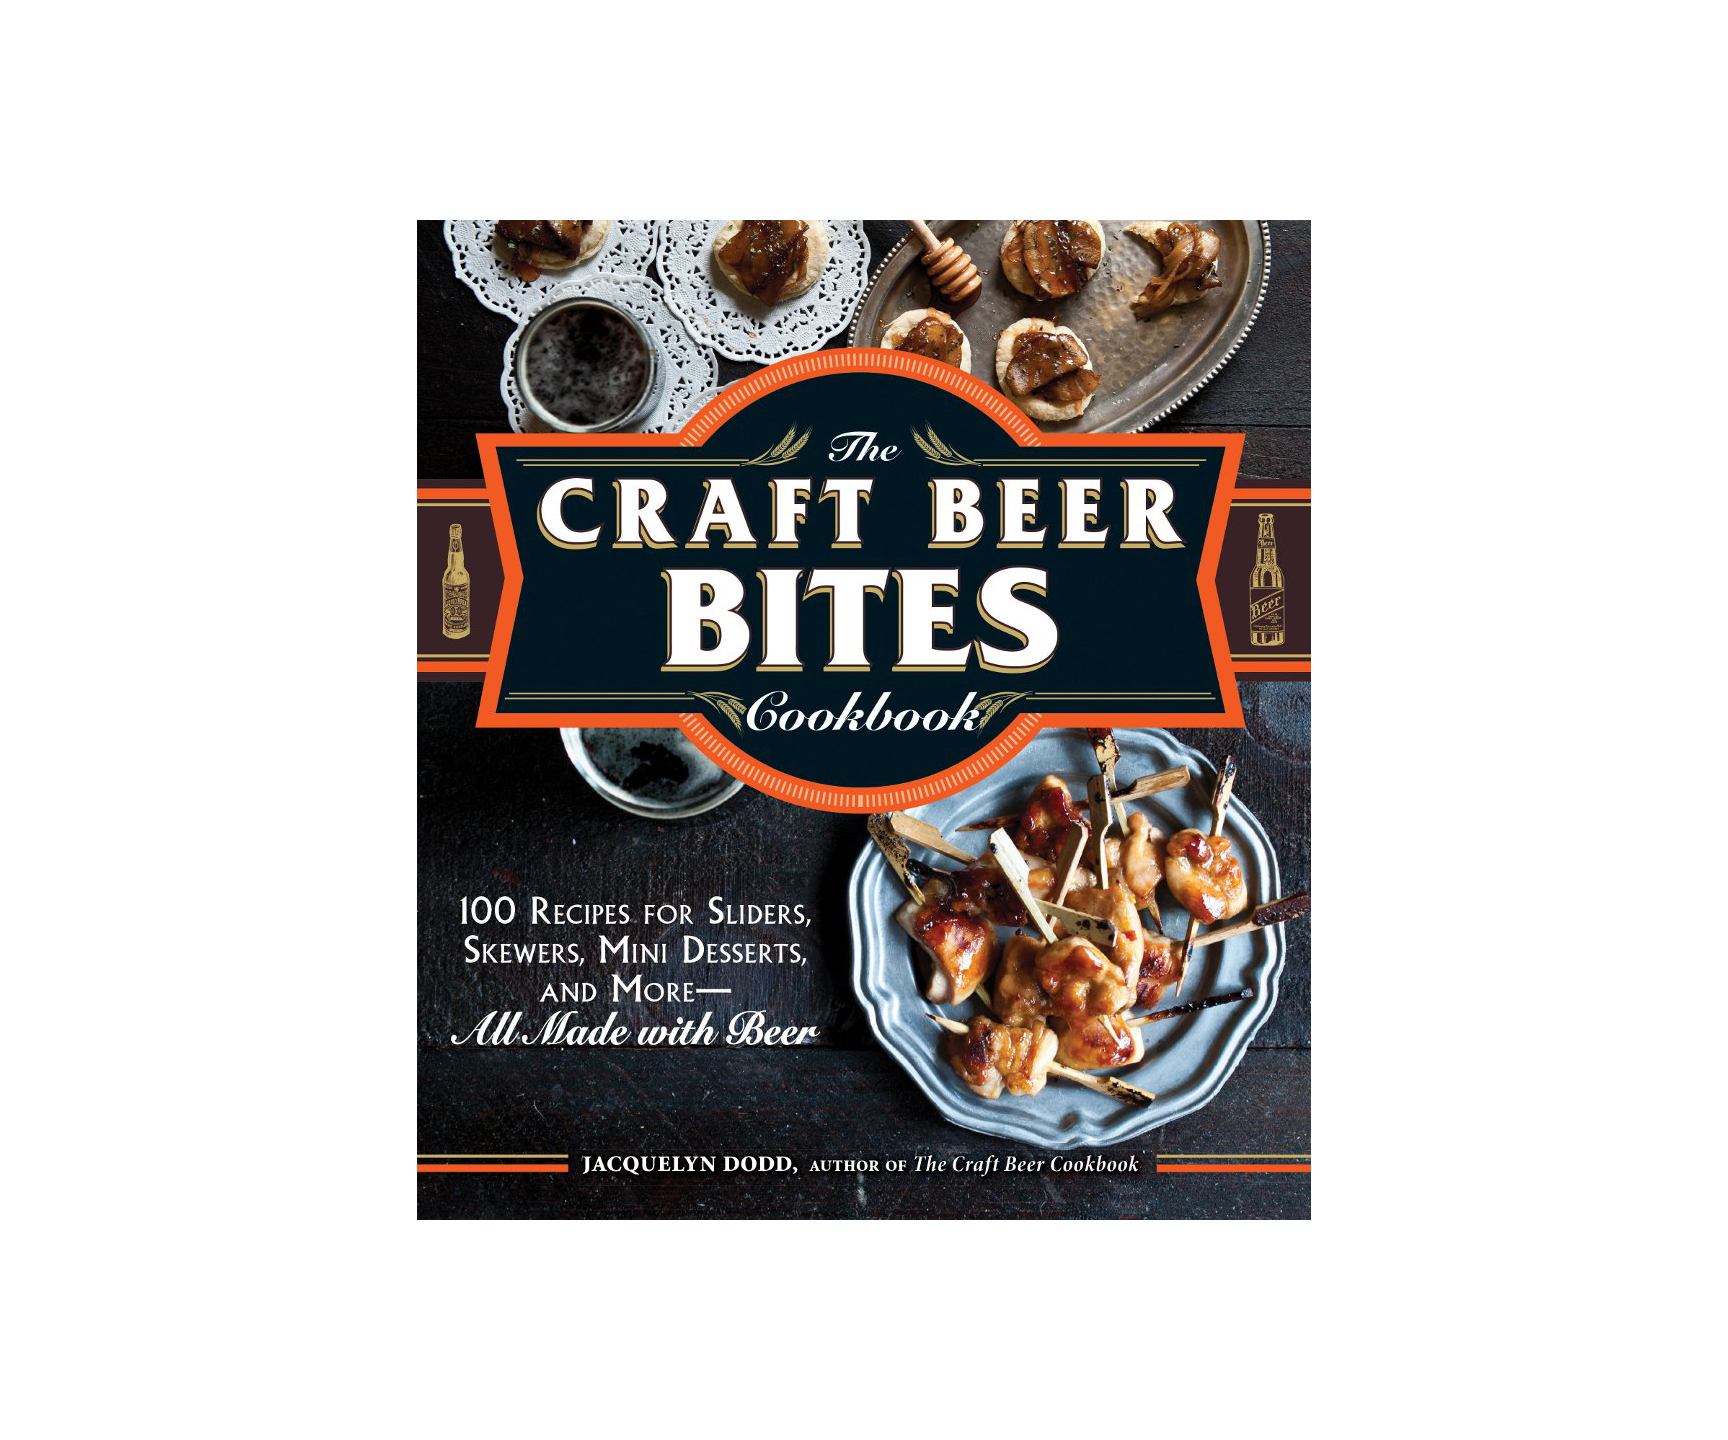 The Craft Beer Bites Cookbook by Jacquelyn Dodd